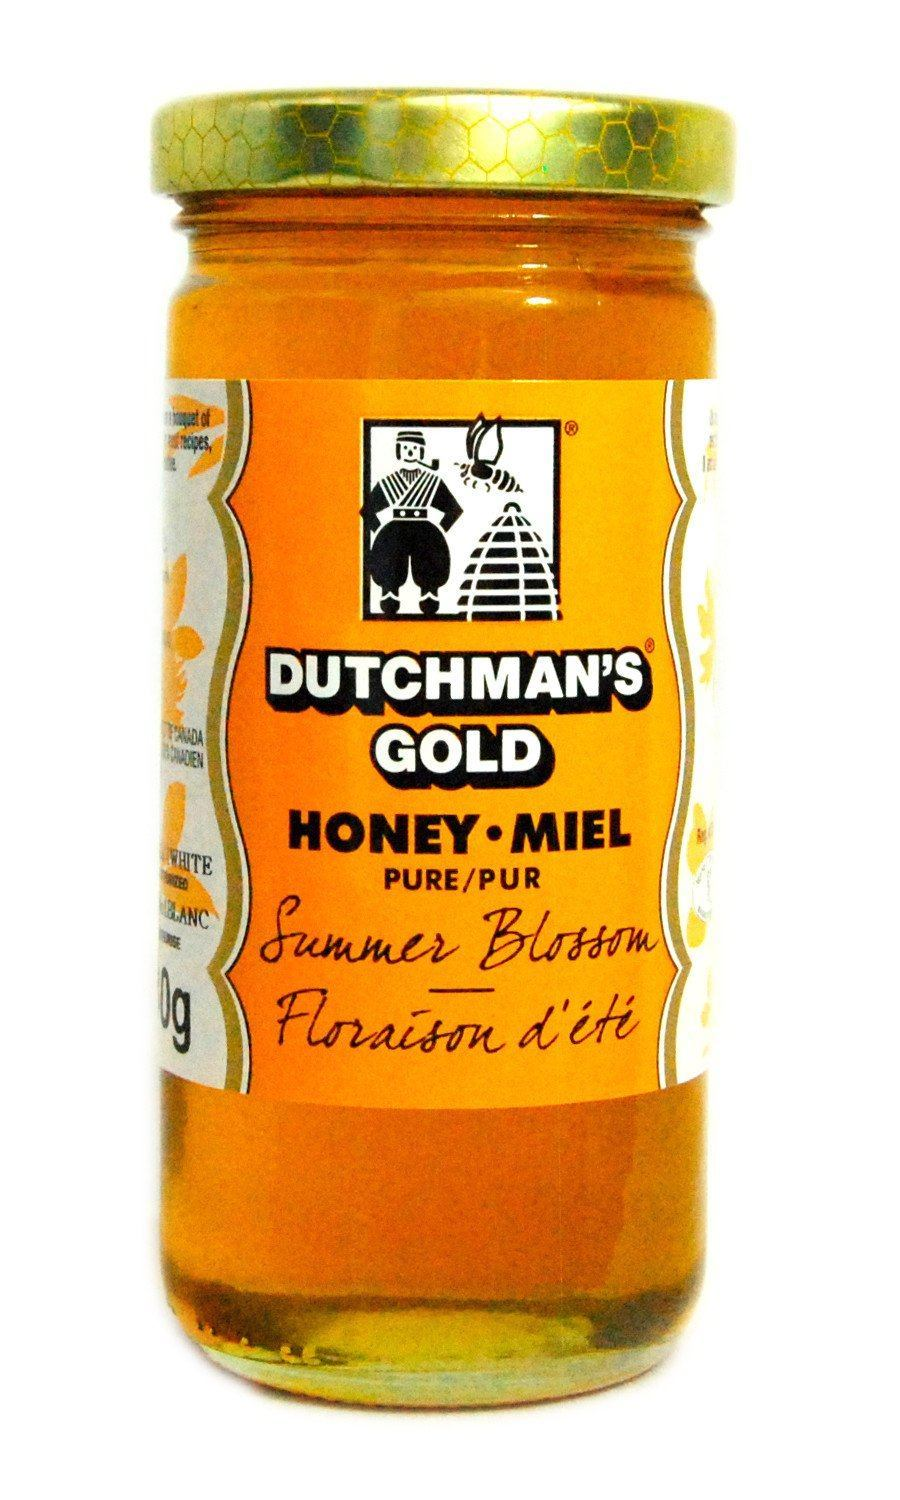 Food & Drink - Dutchman's Gold - Summer Blossom Honey - 330g